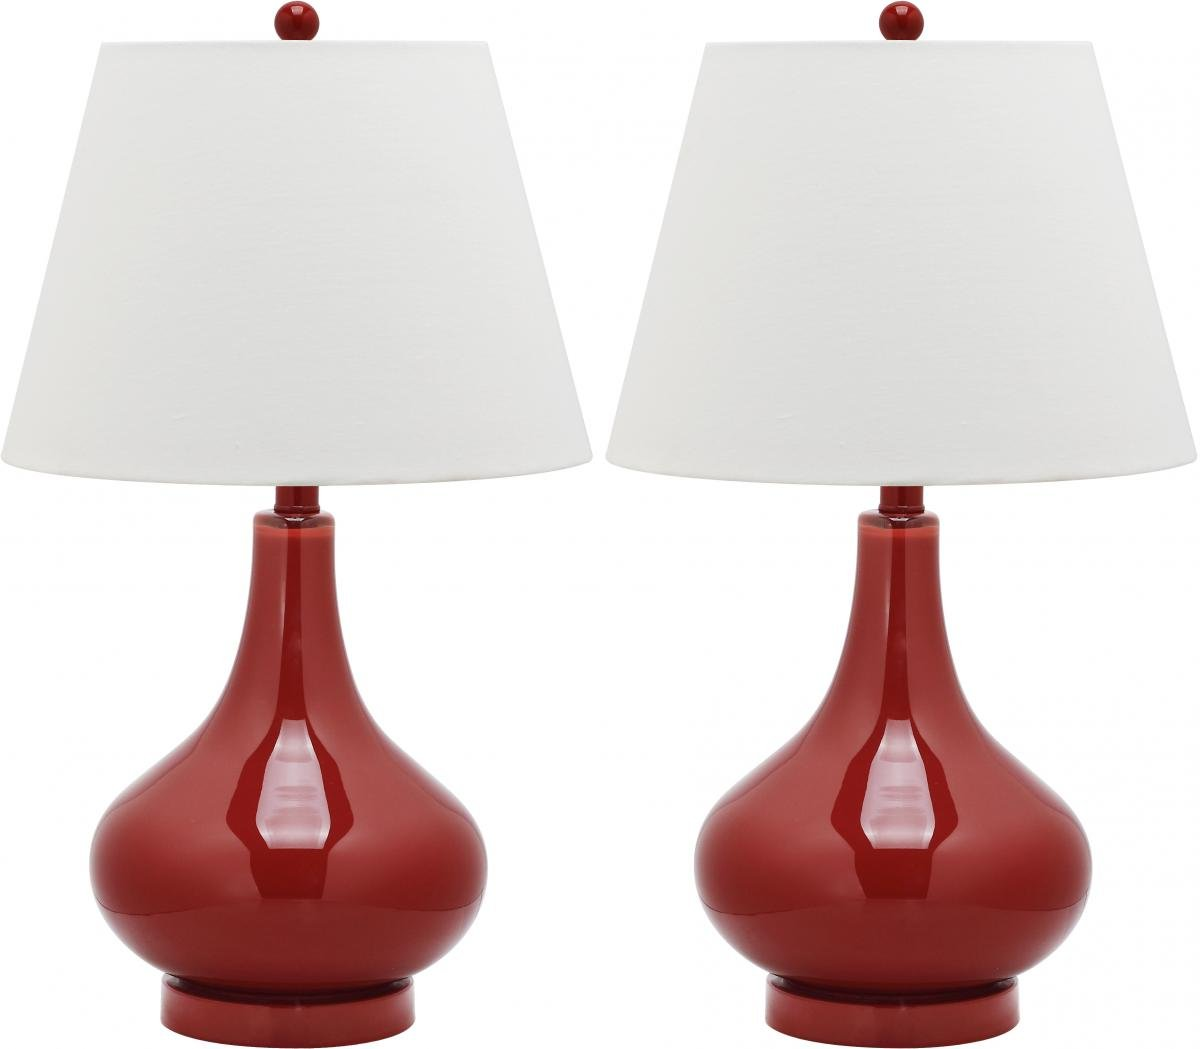 Amazoncom Safavieh Lighting Collection Amy Gourd Glass Table - Red table lamps for bedroom